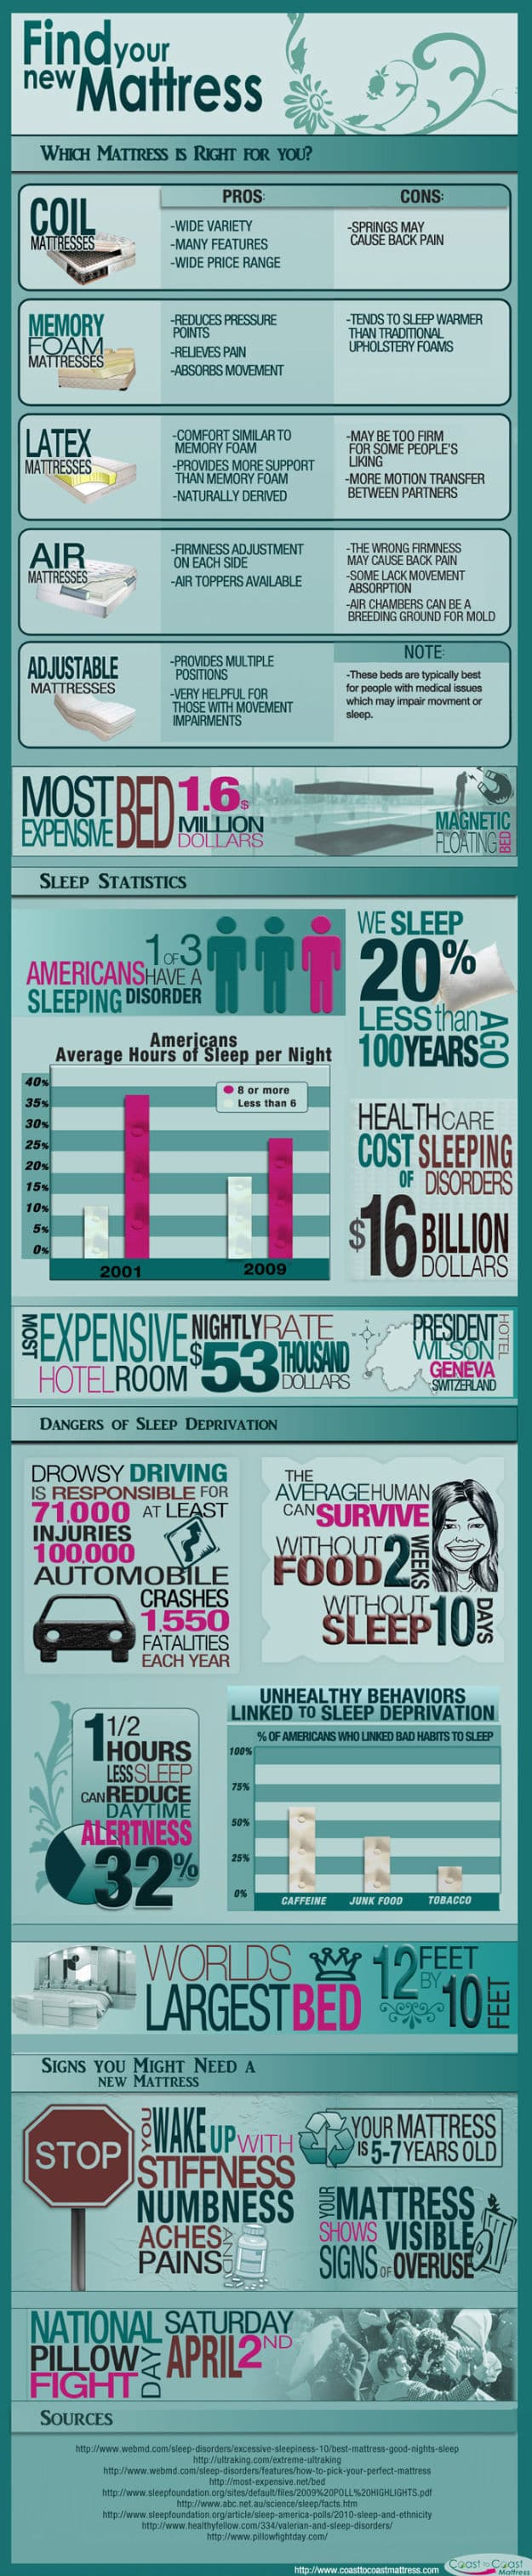 facts about sleep and mattress